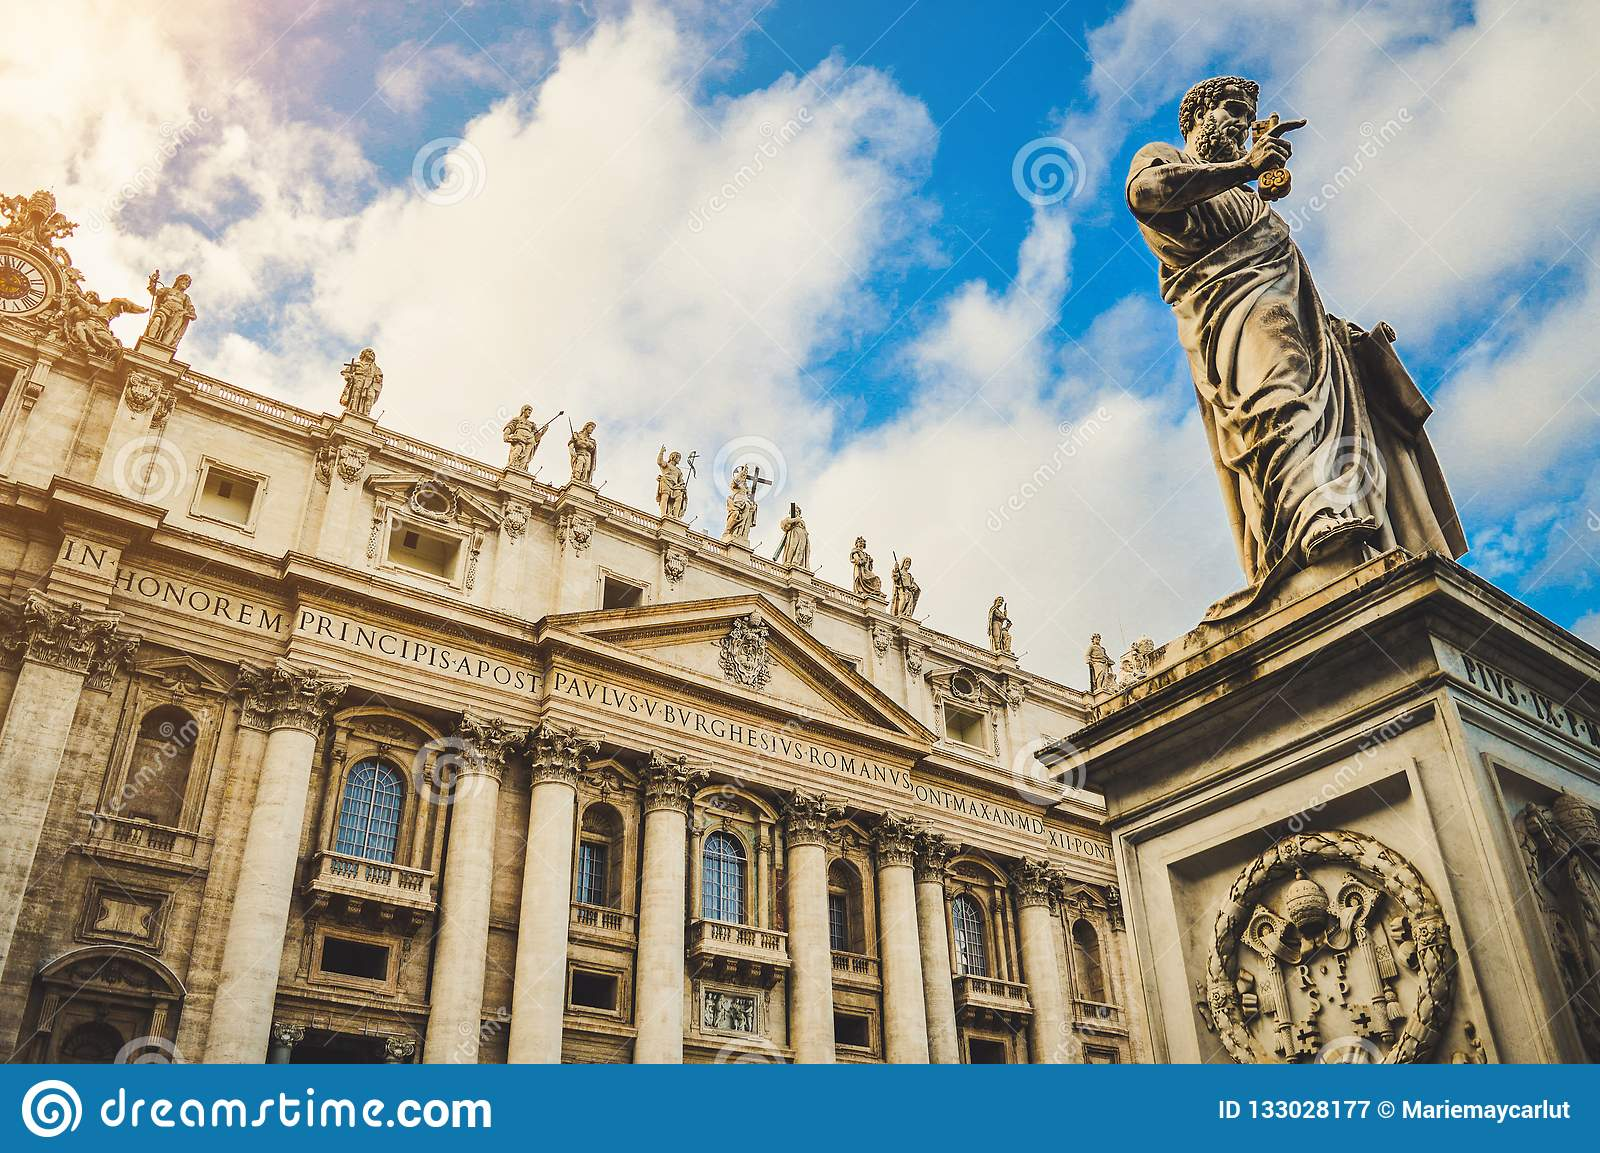 St. Peter`s square, Vatican City, Roma. Low angle view of the statue of St. Peter with the front of the Basilica in the background